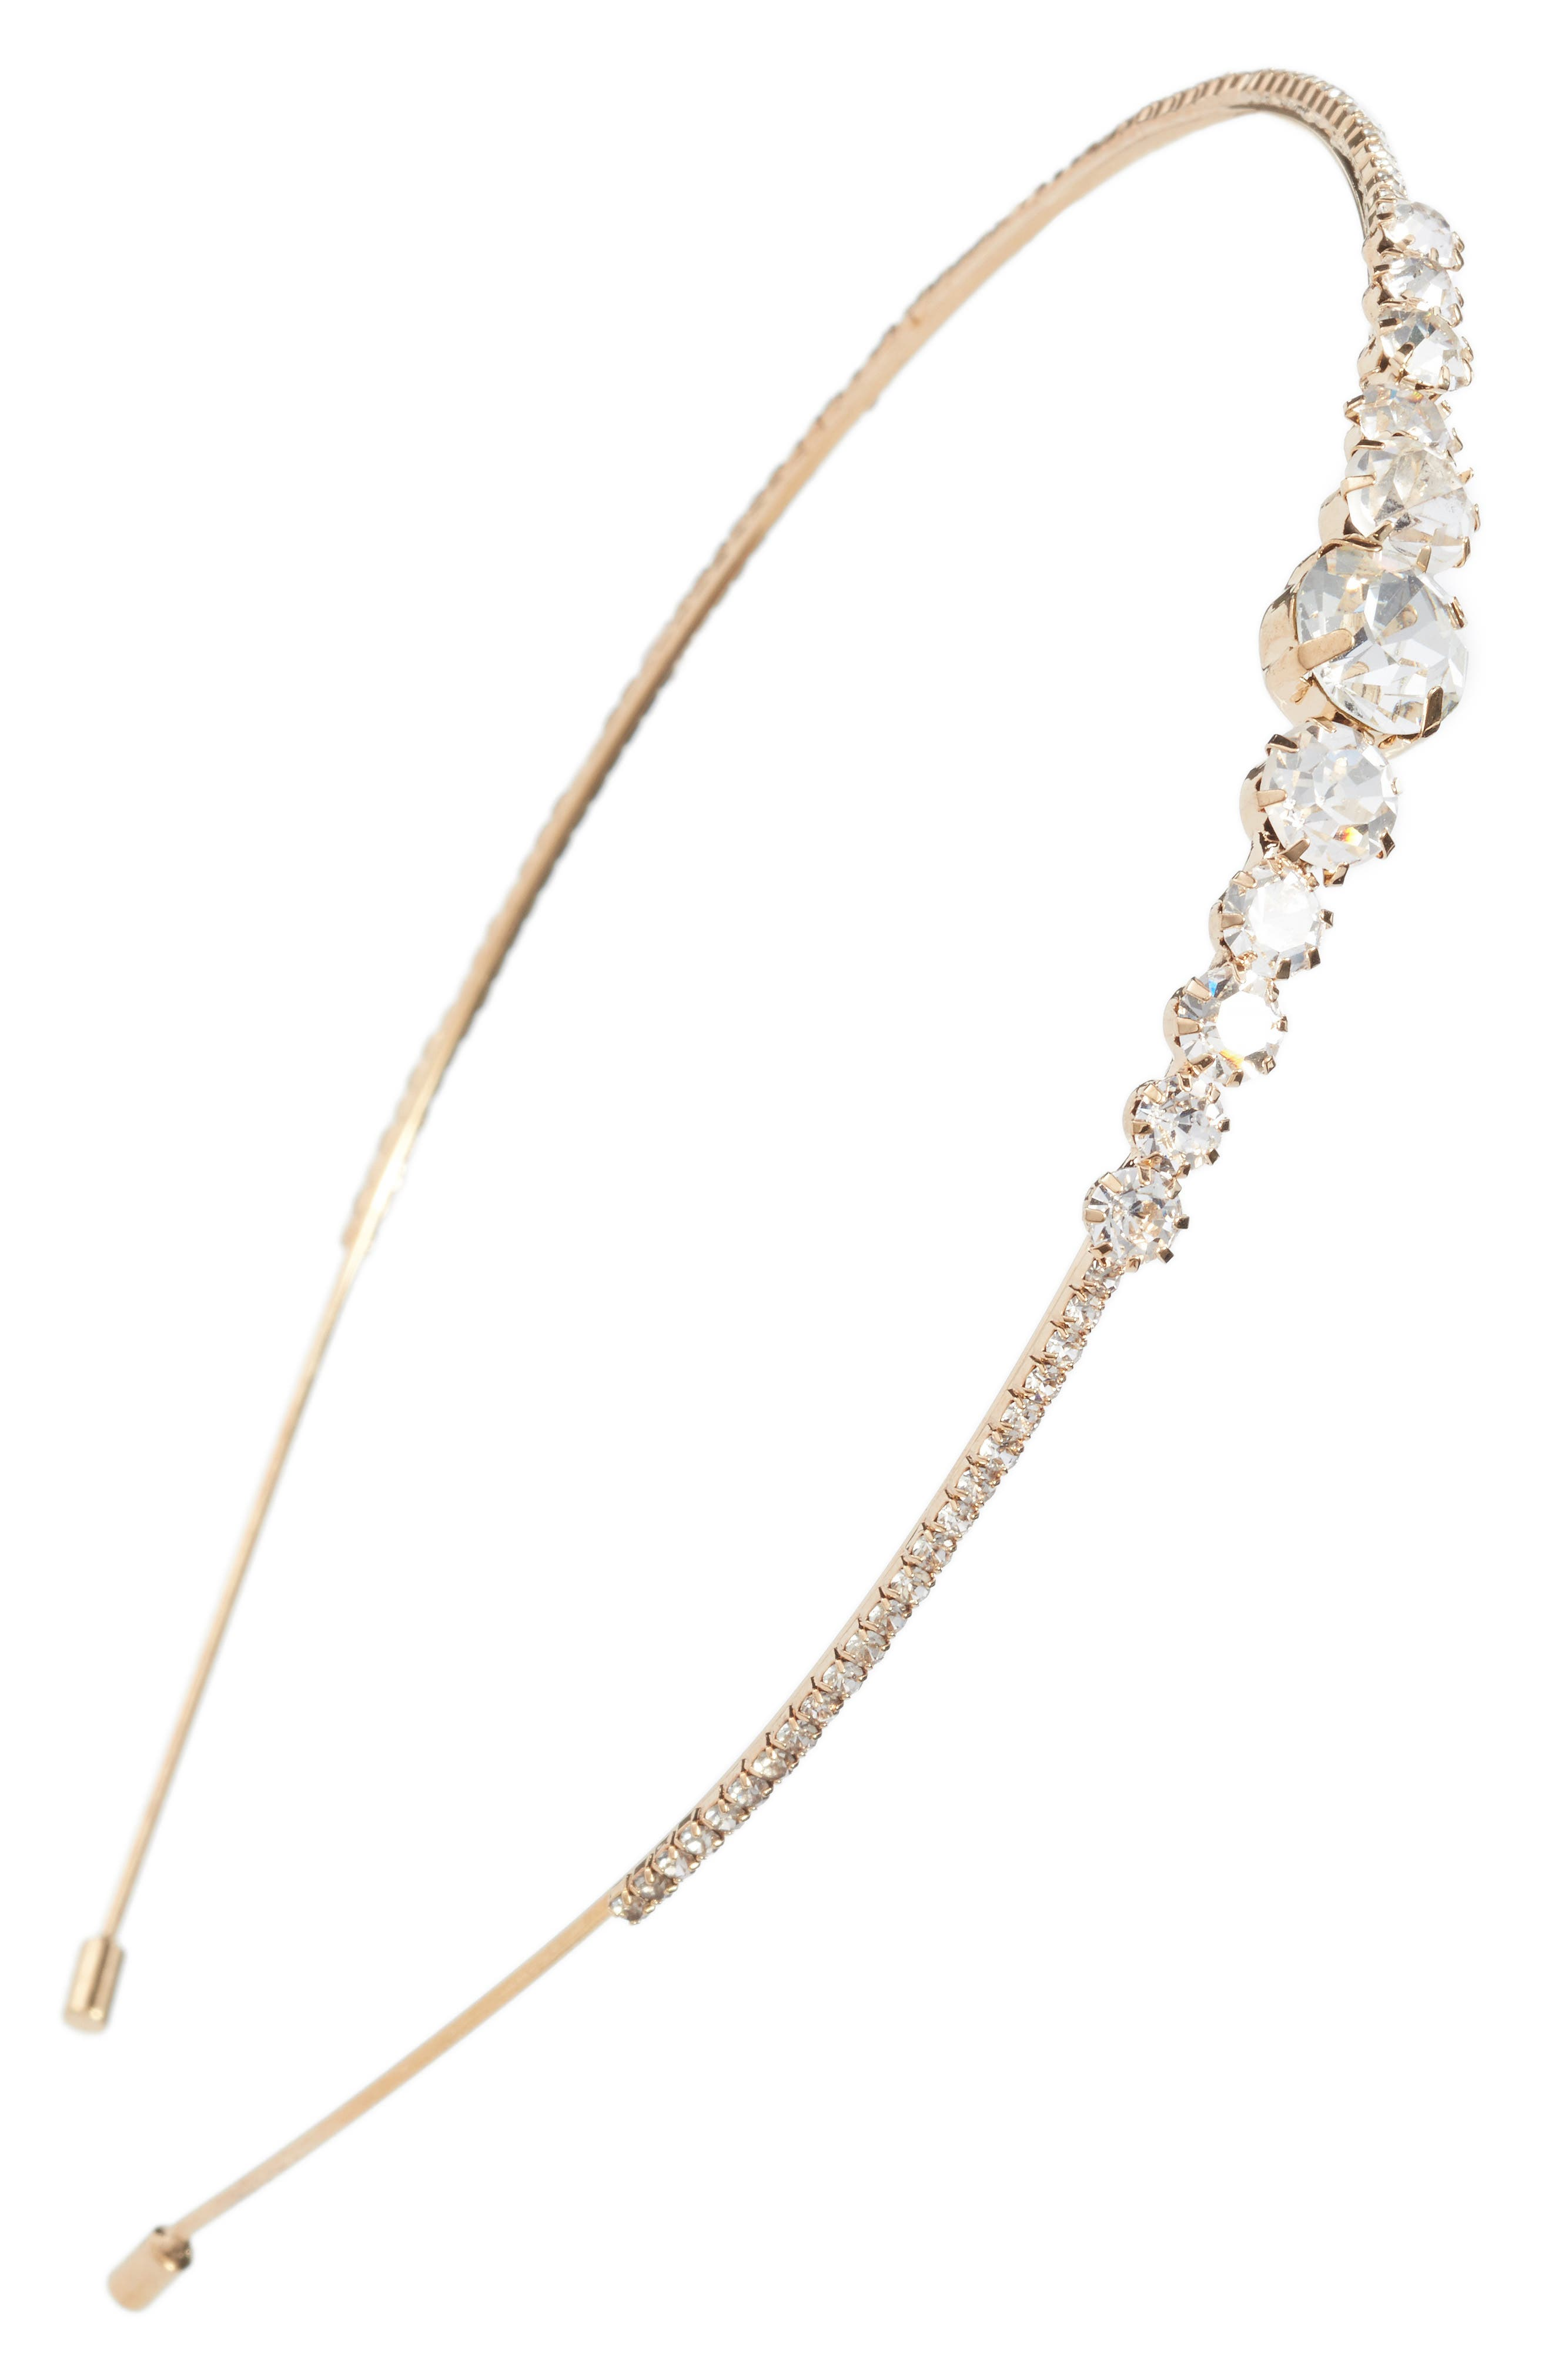 Crystal Embellished Headband,                         Main,                         color, 710